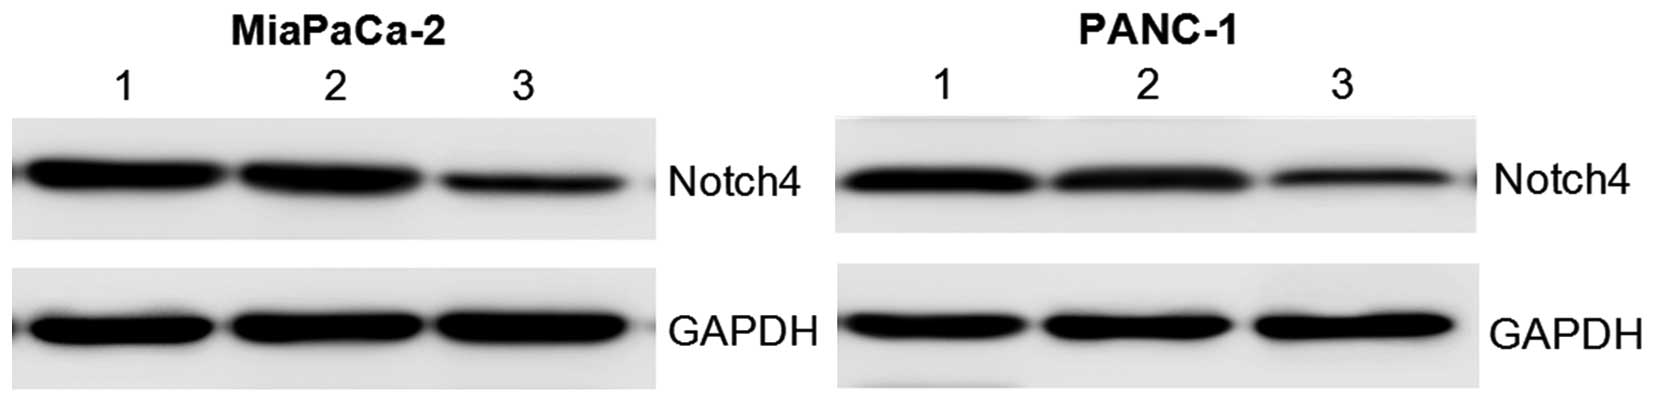 Notch4 inhibition reduces migration and invasion and